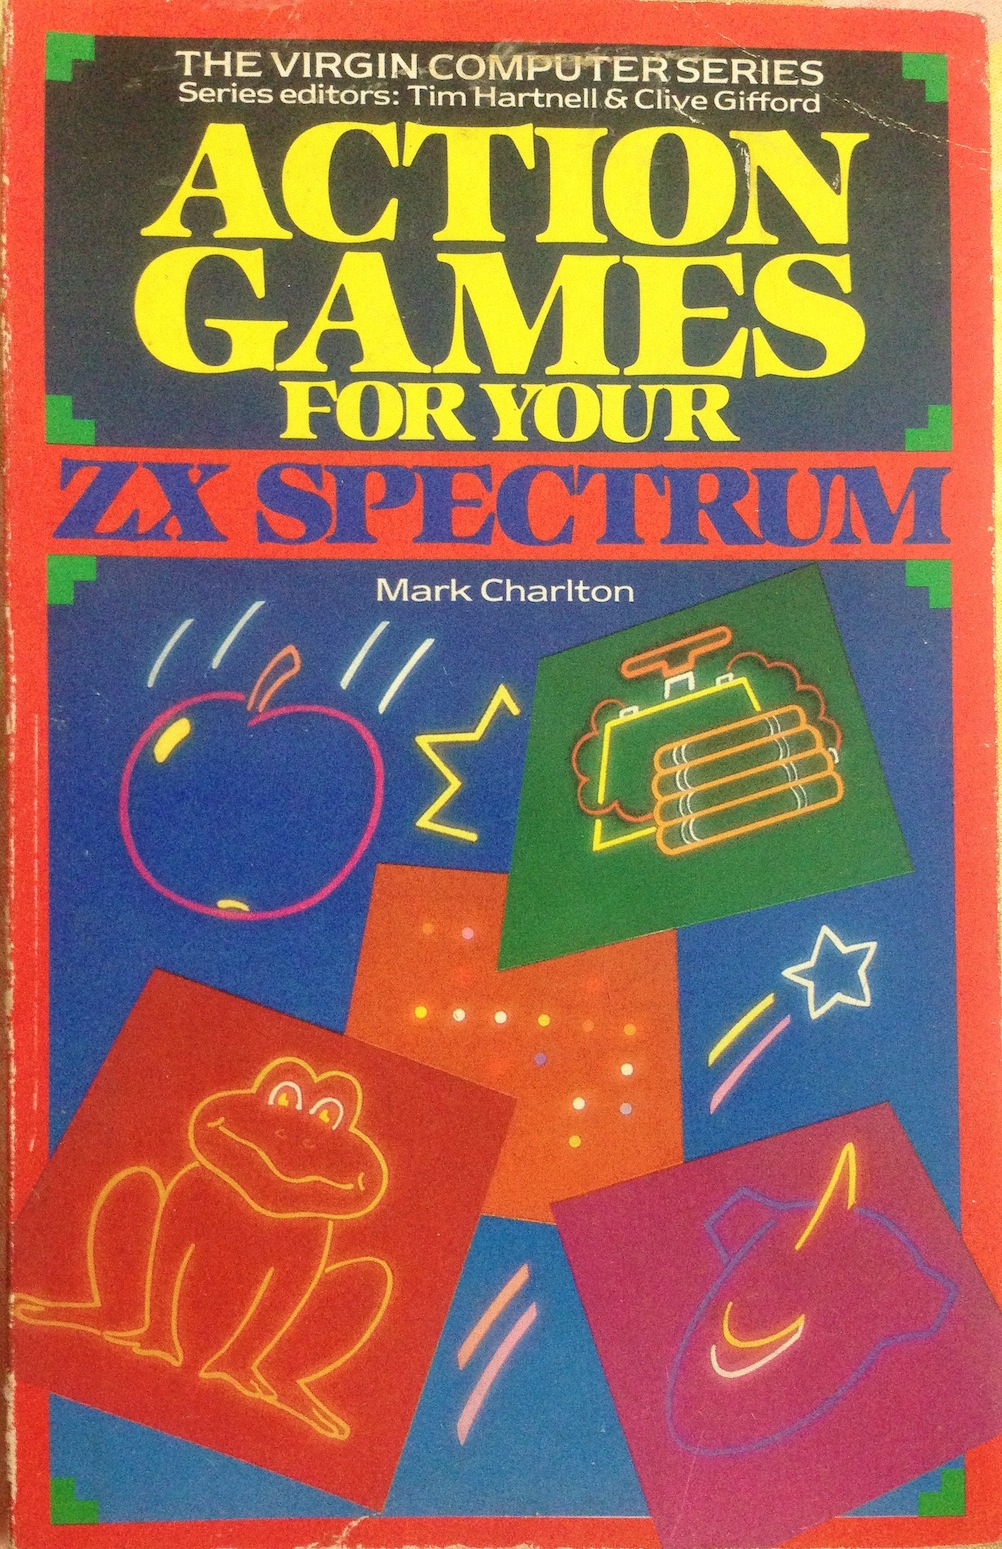 Action Games for Your ZX Spectrum screen